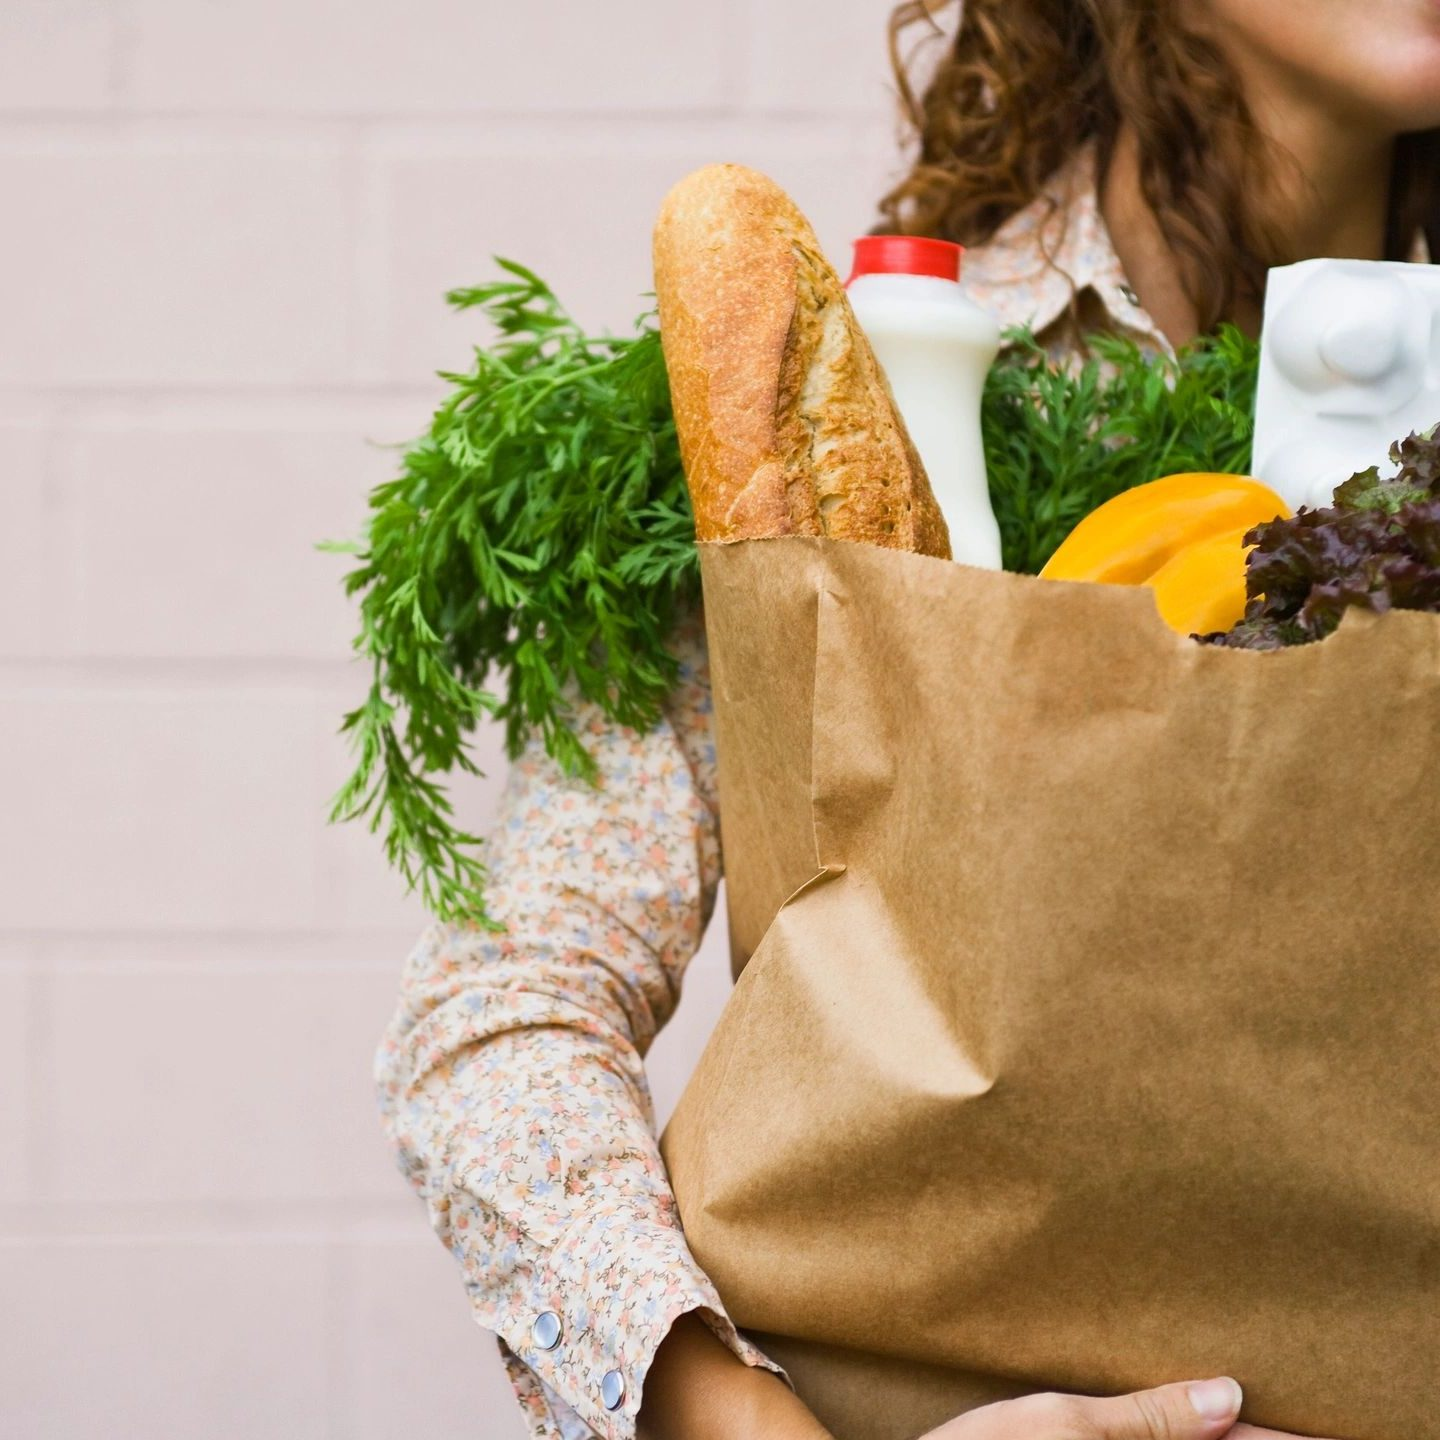 Abs Are Made In the Kitchen: Eat Whole Foods and Log Everything